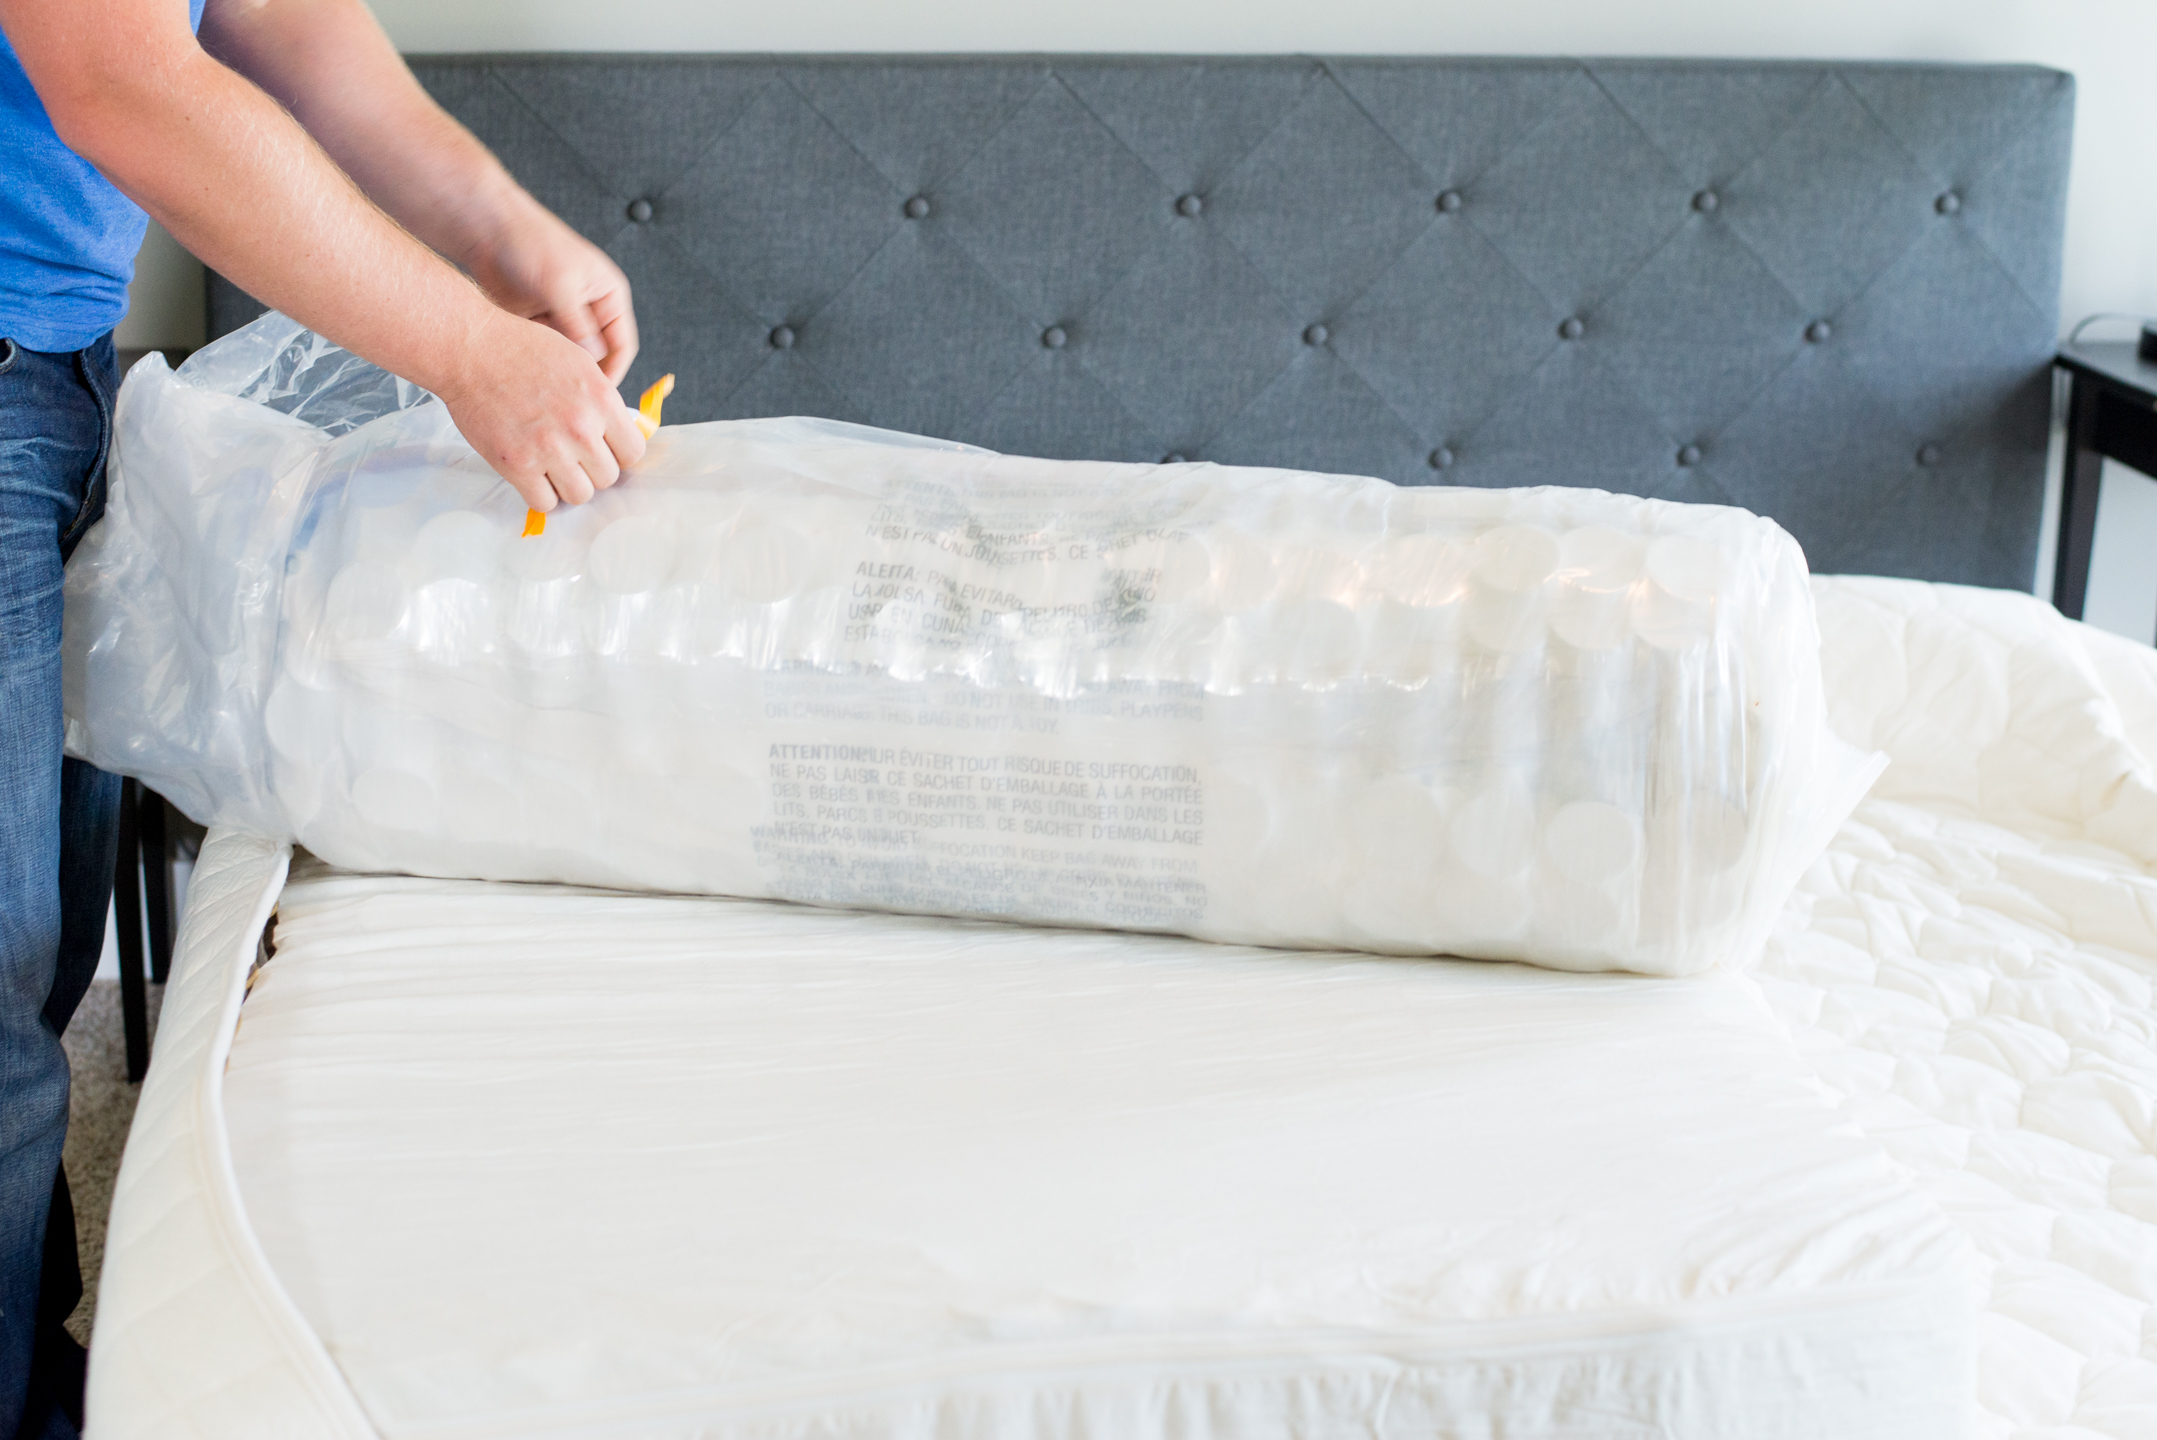 Is your mattress slowly killing you? There is a lot of research coming out about the safety and health implications of a mattress, the thing you spend 1/3 of your life on. Here's what you need to know.